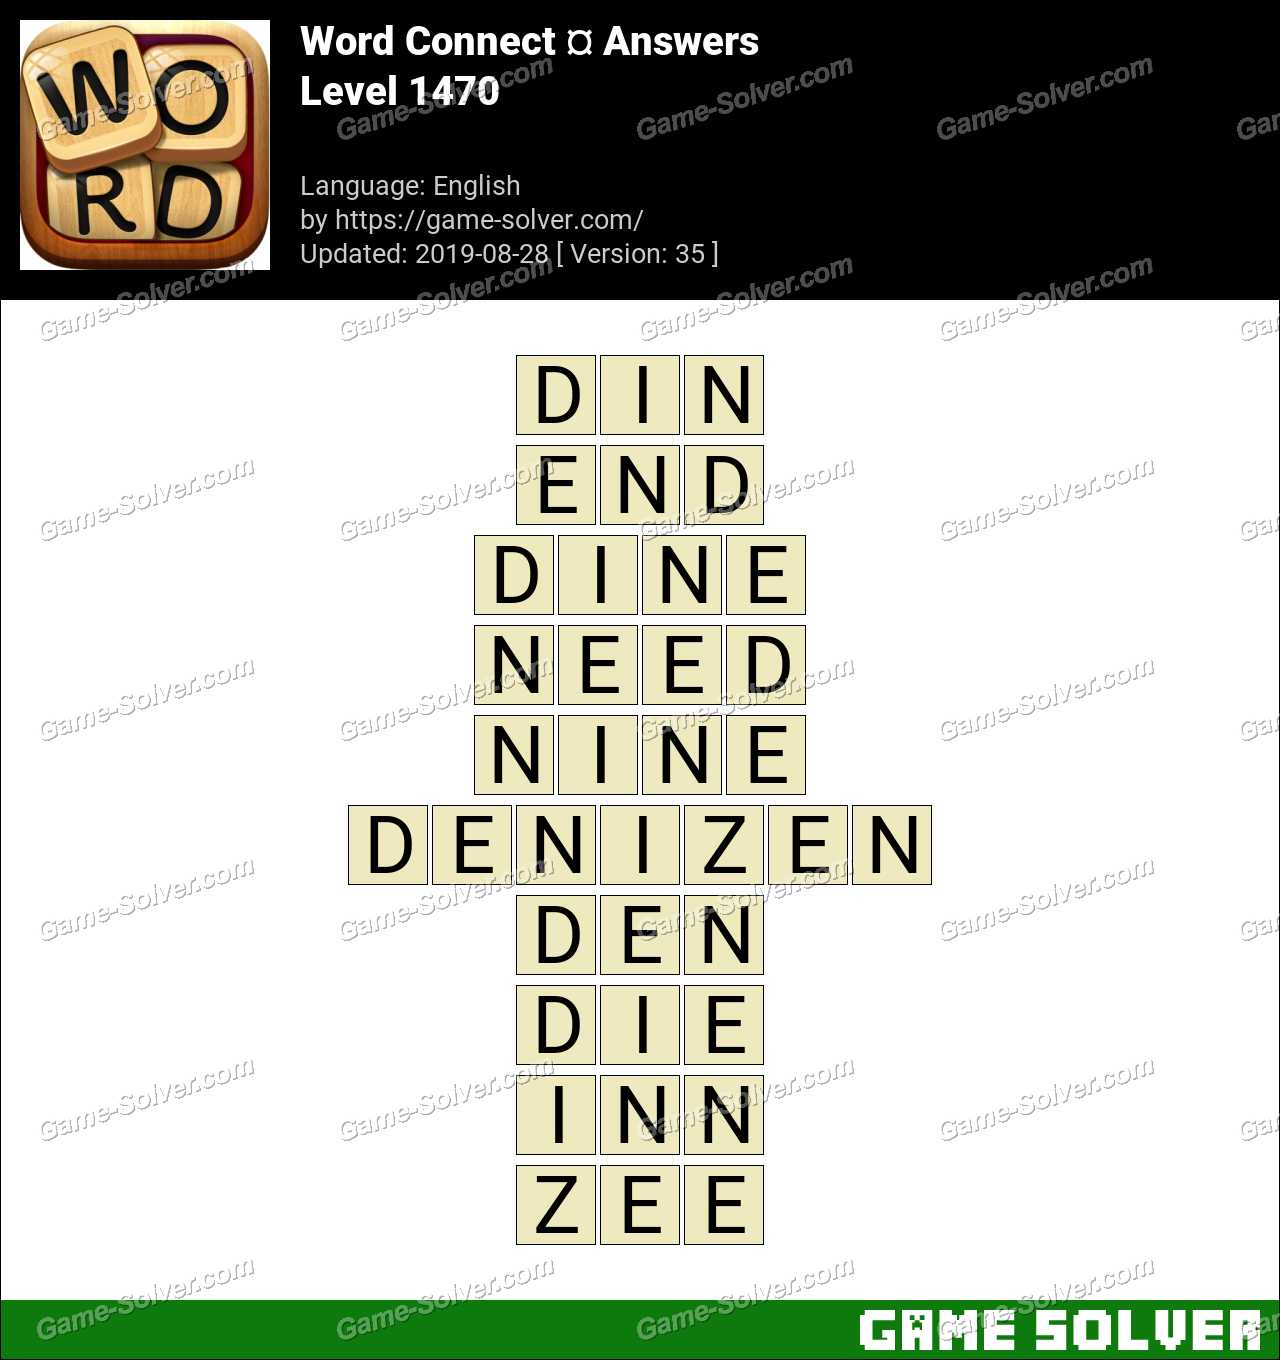 Word Connect Level 1470 Answers